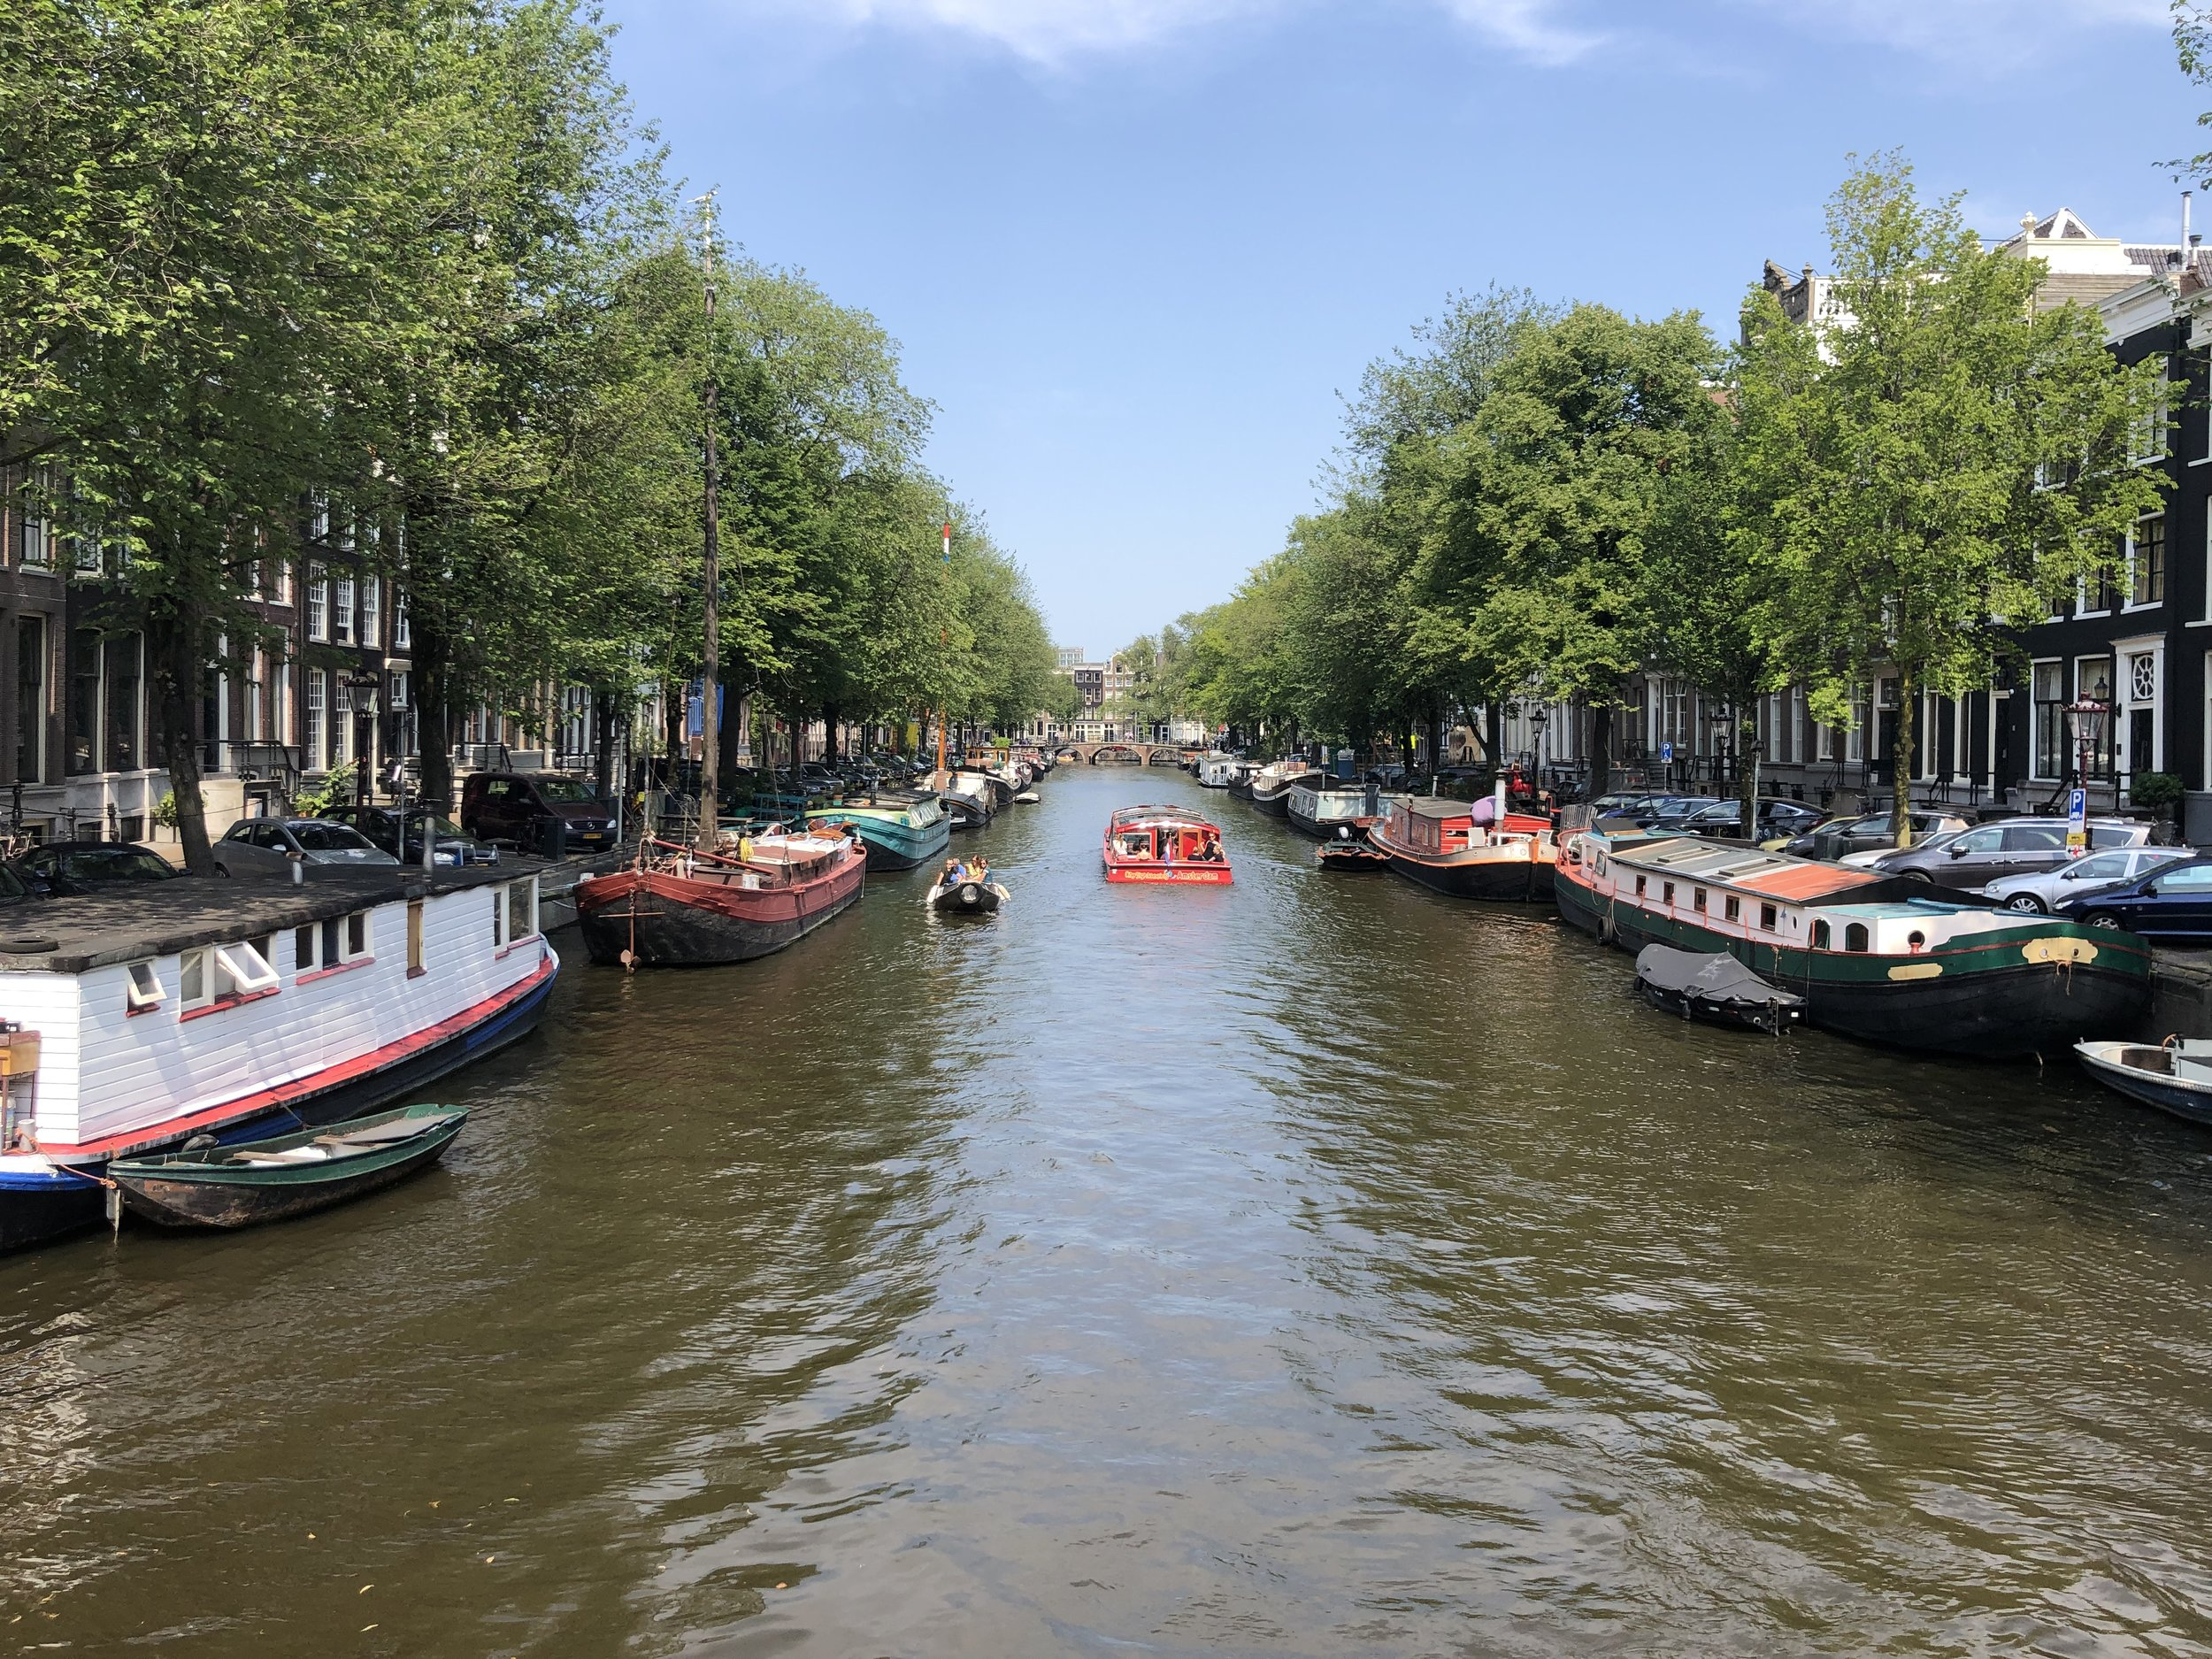 Like many places in Europe we could have spent lots more time in Amsterdam. It is a beautiful city.